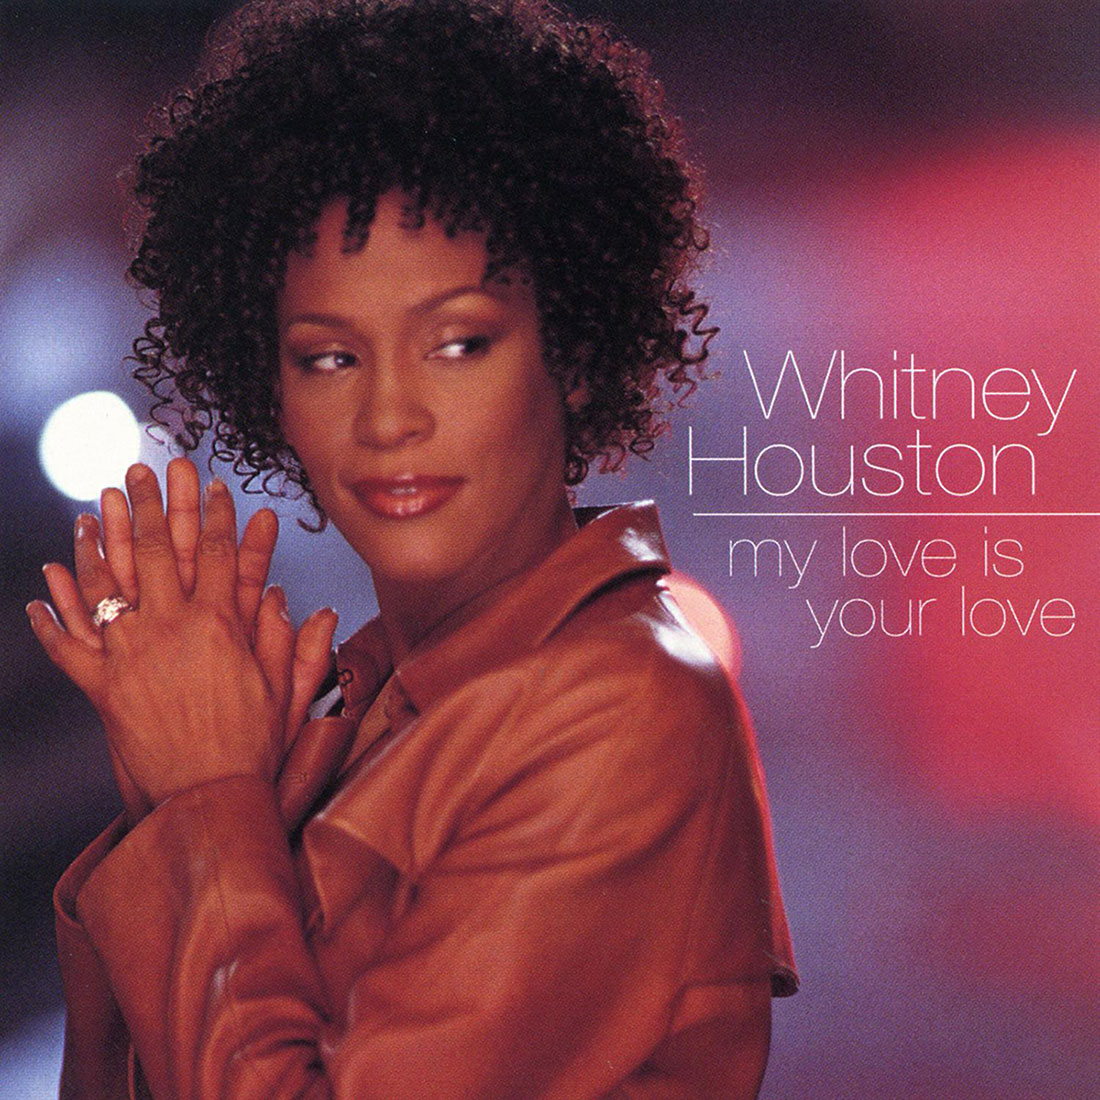 Whitney Houston - My Love Is Your Love single front cover